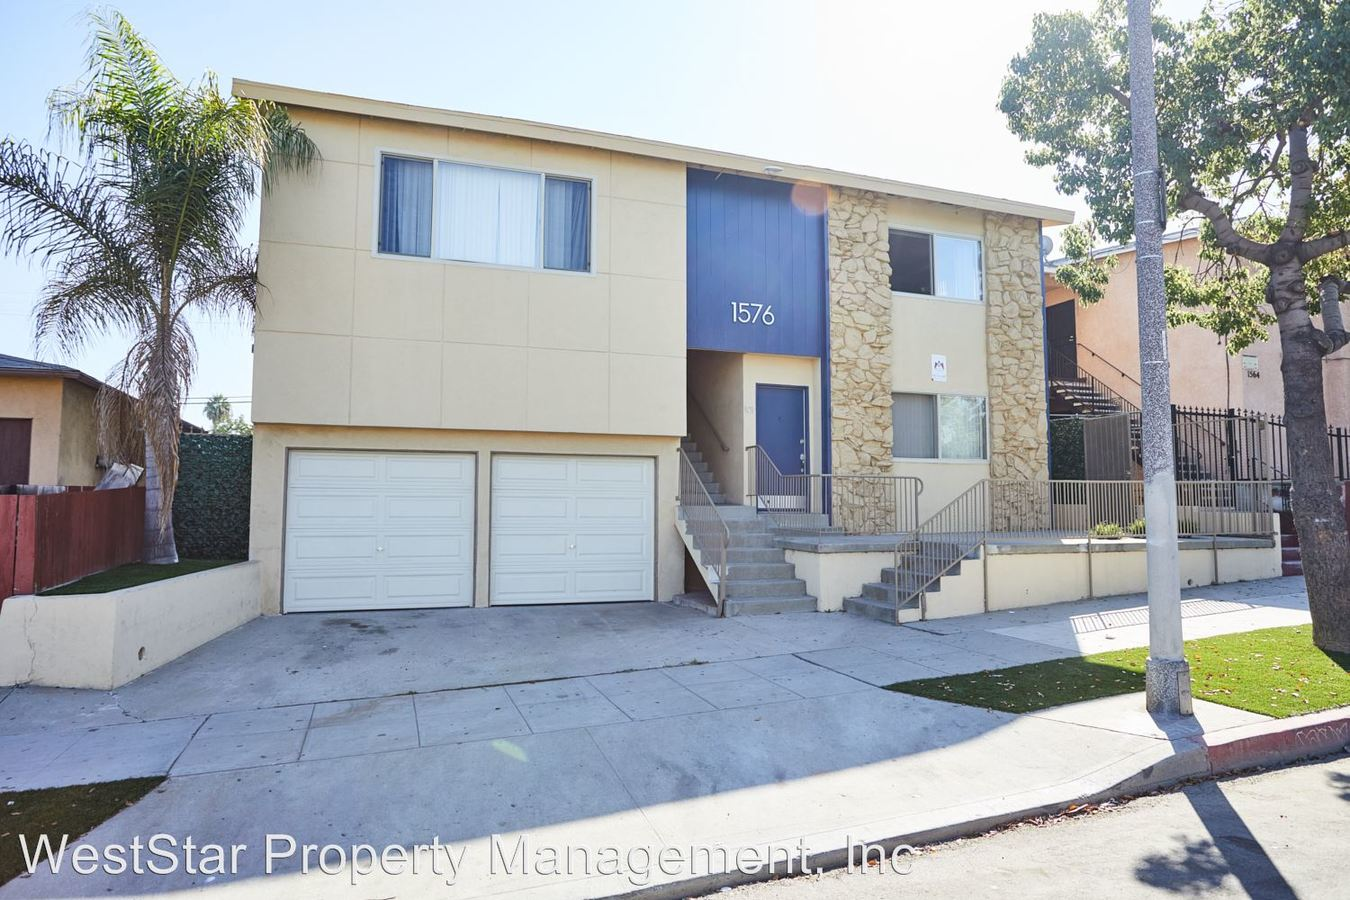 1 Bedroom 1 Bathroom Apartment for rent at 1576 Locust Ave. in Long Beach, CA